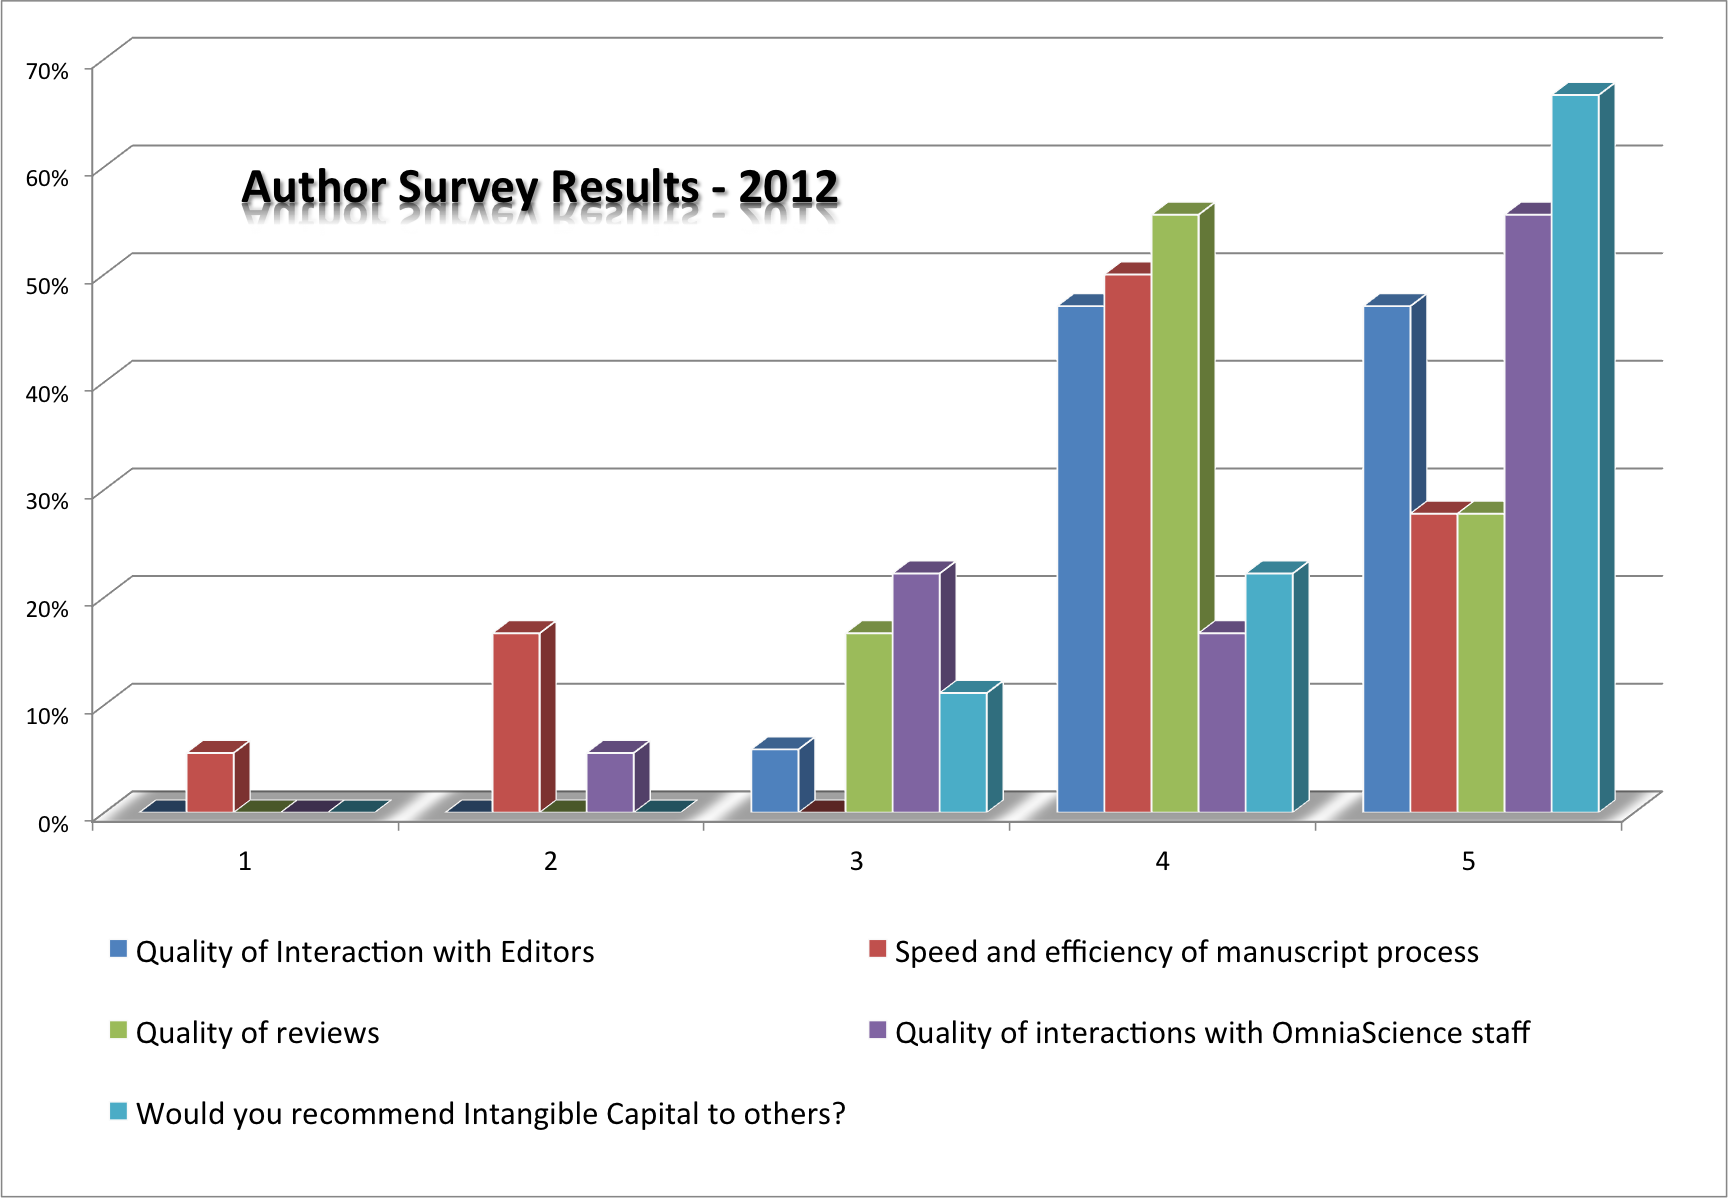 Author Survey Results 2012